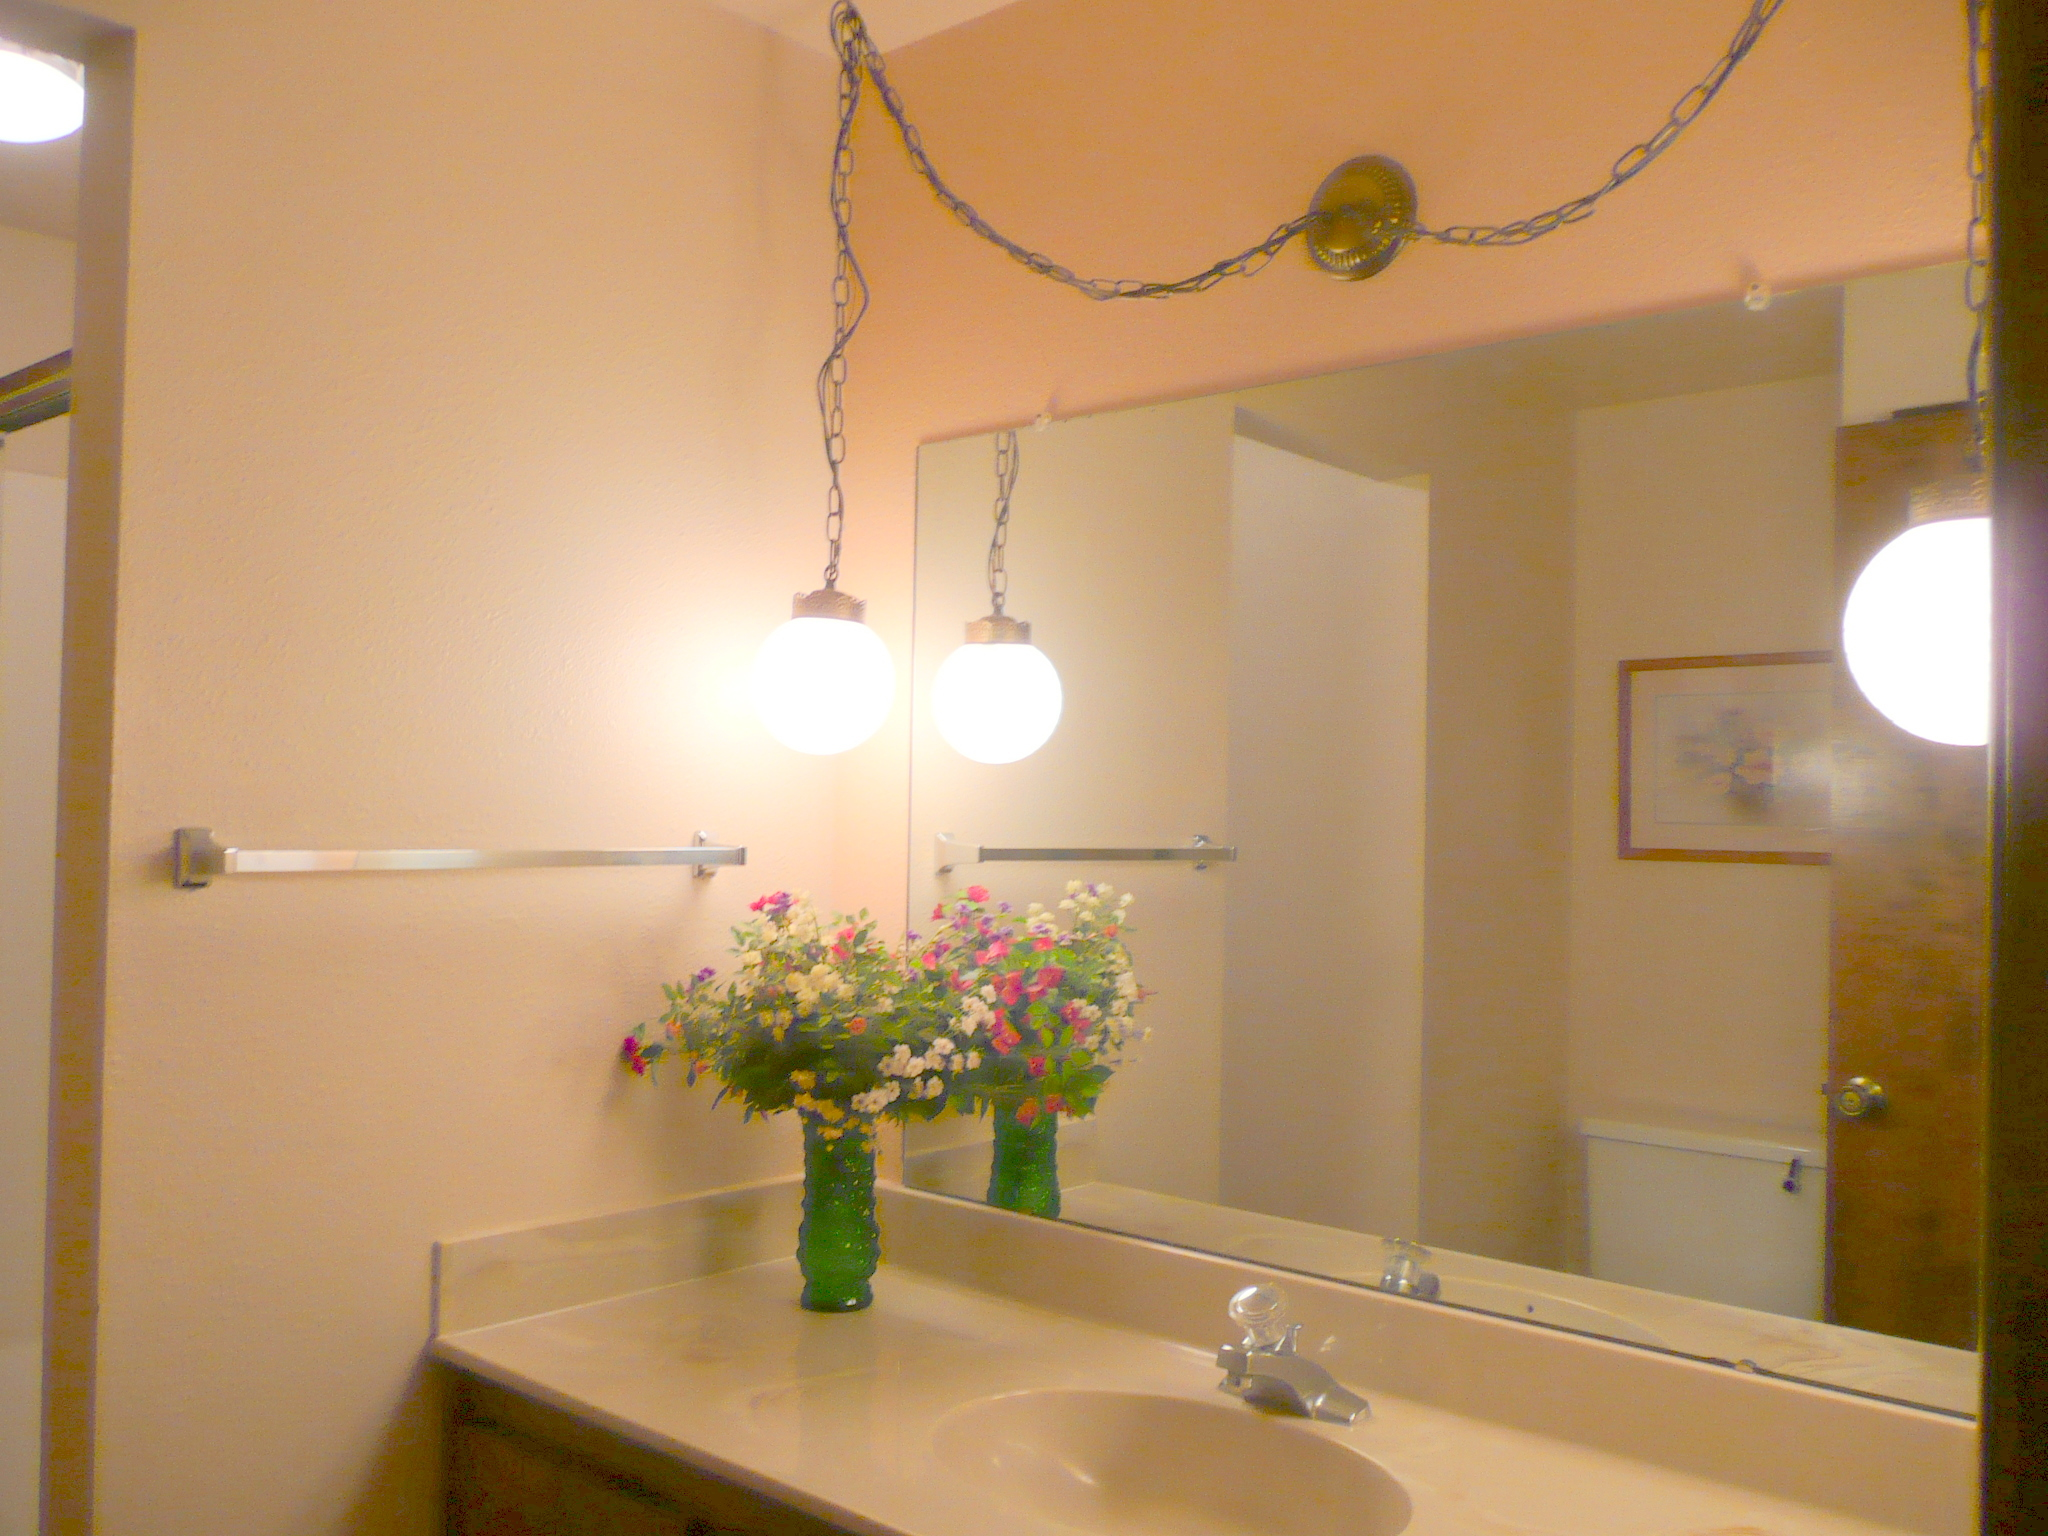 If Your Bathroom Features Broadway Light